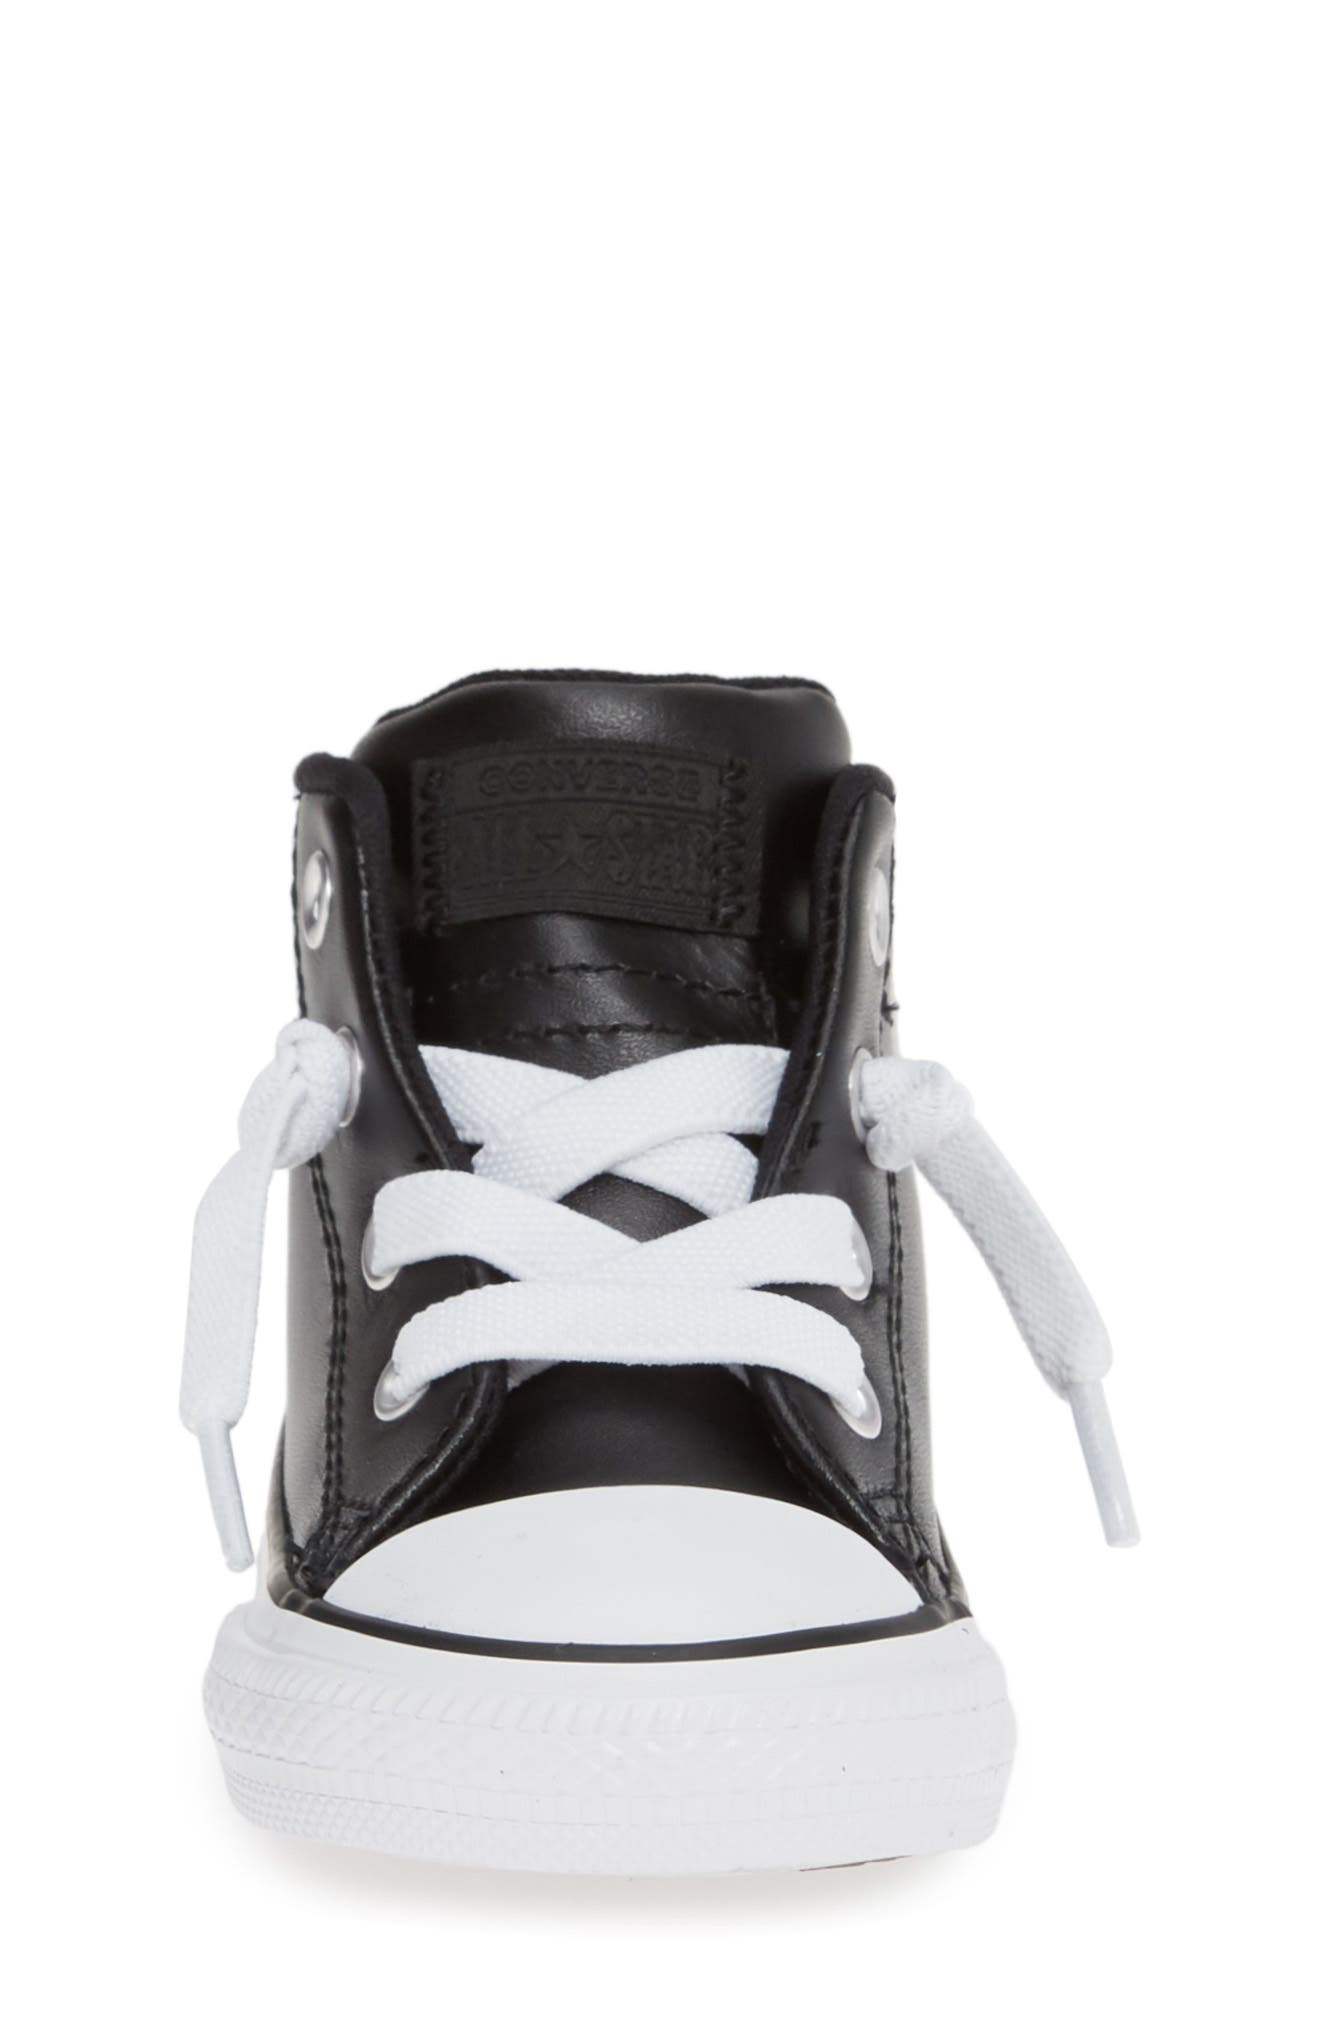 CONVERSE, Chuck Taylor<sup>®</sup> All Star<sup>®</sup> Street Mid Top Sneaker, Alternate thumbnail 4, color, BLACK/ BLACK/ WHITE